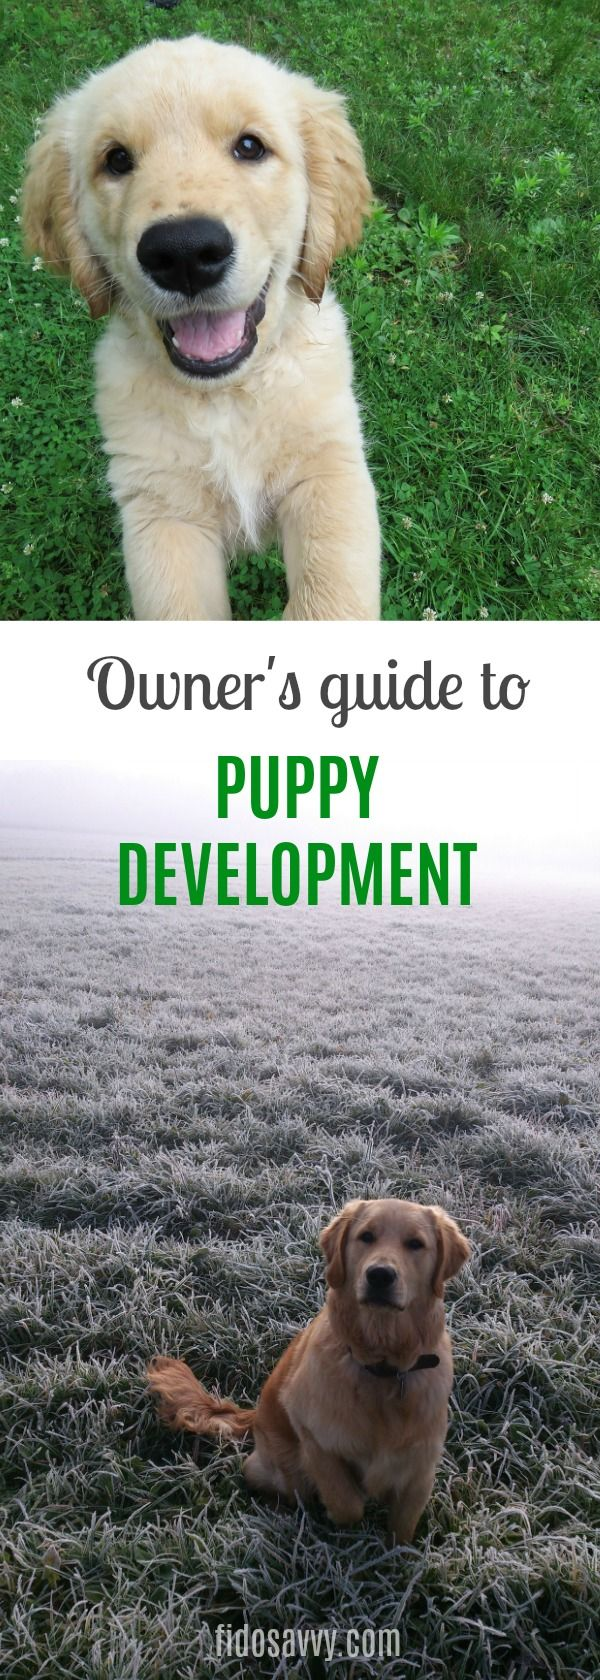 Puppy Development And Growth Stage By Stage Guide Dogs Golden